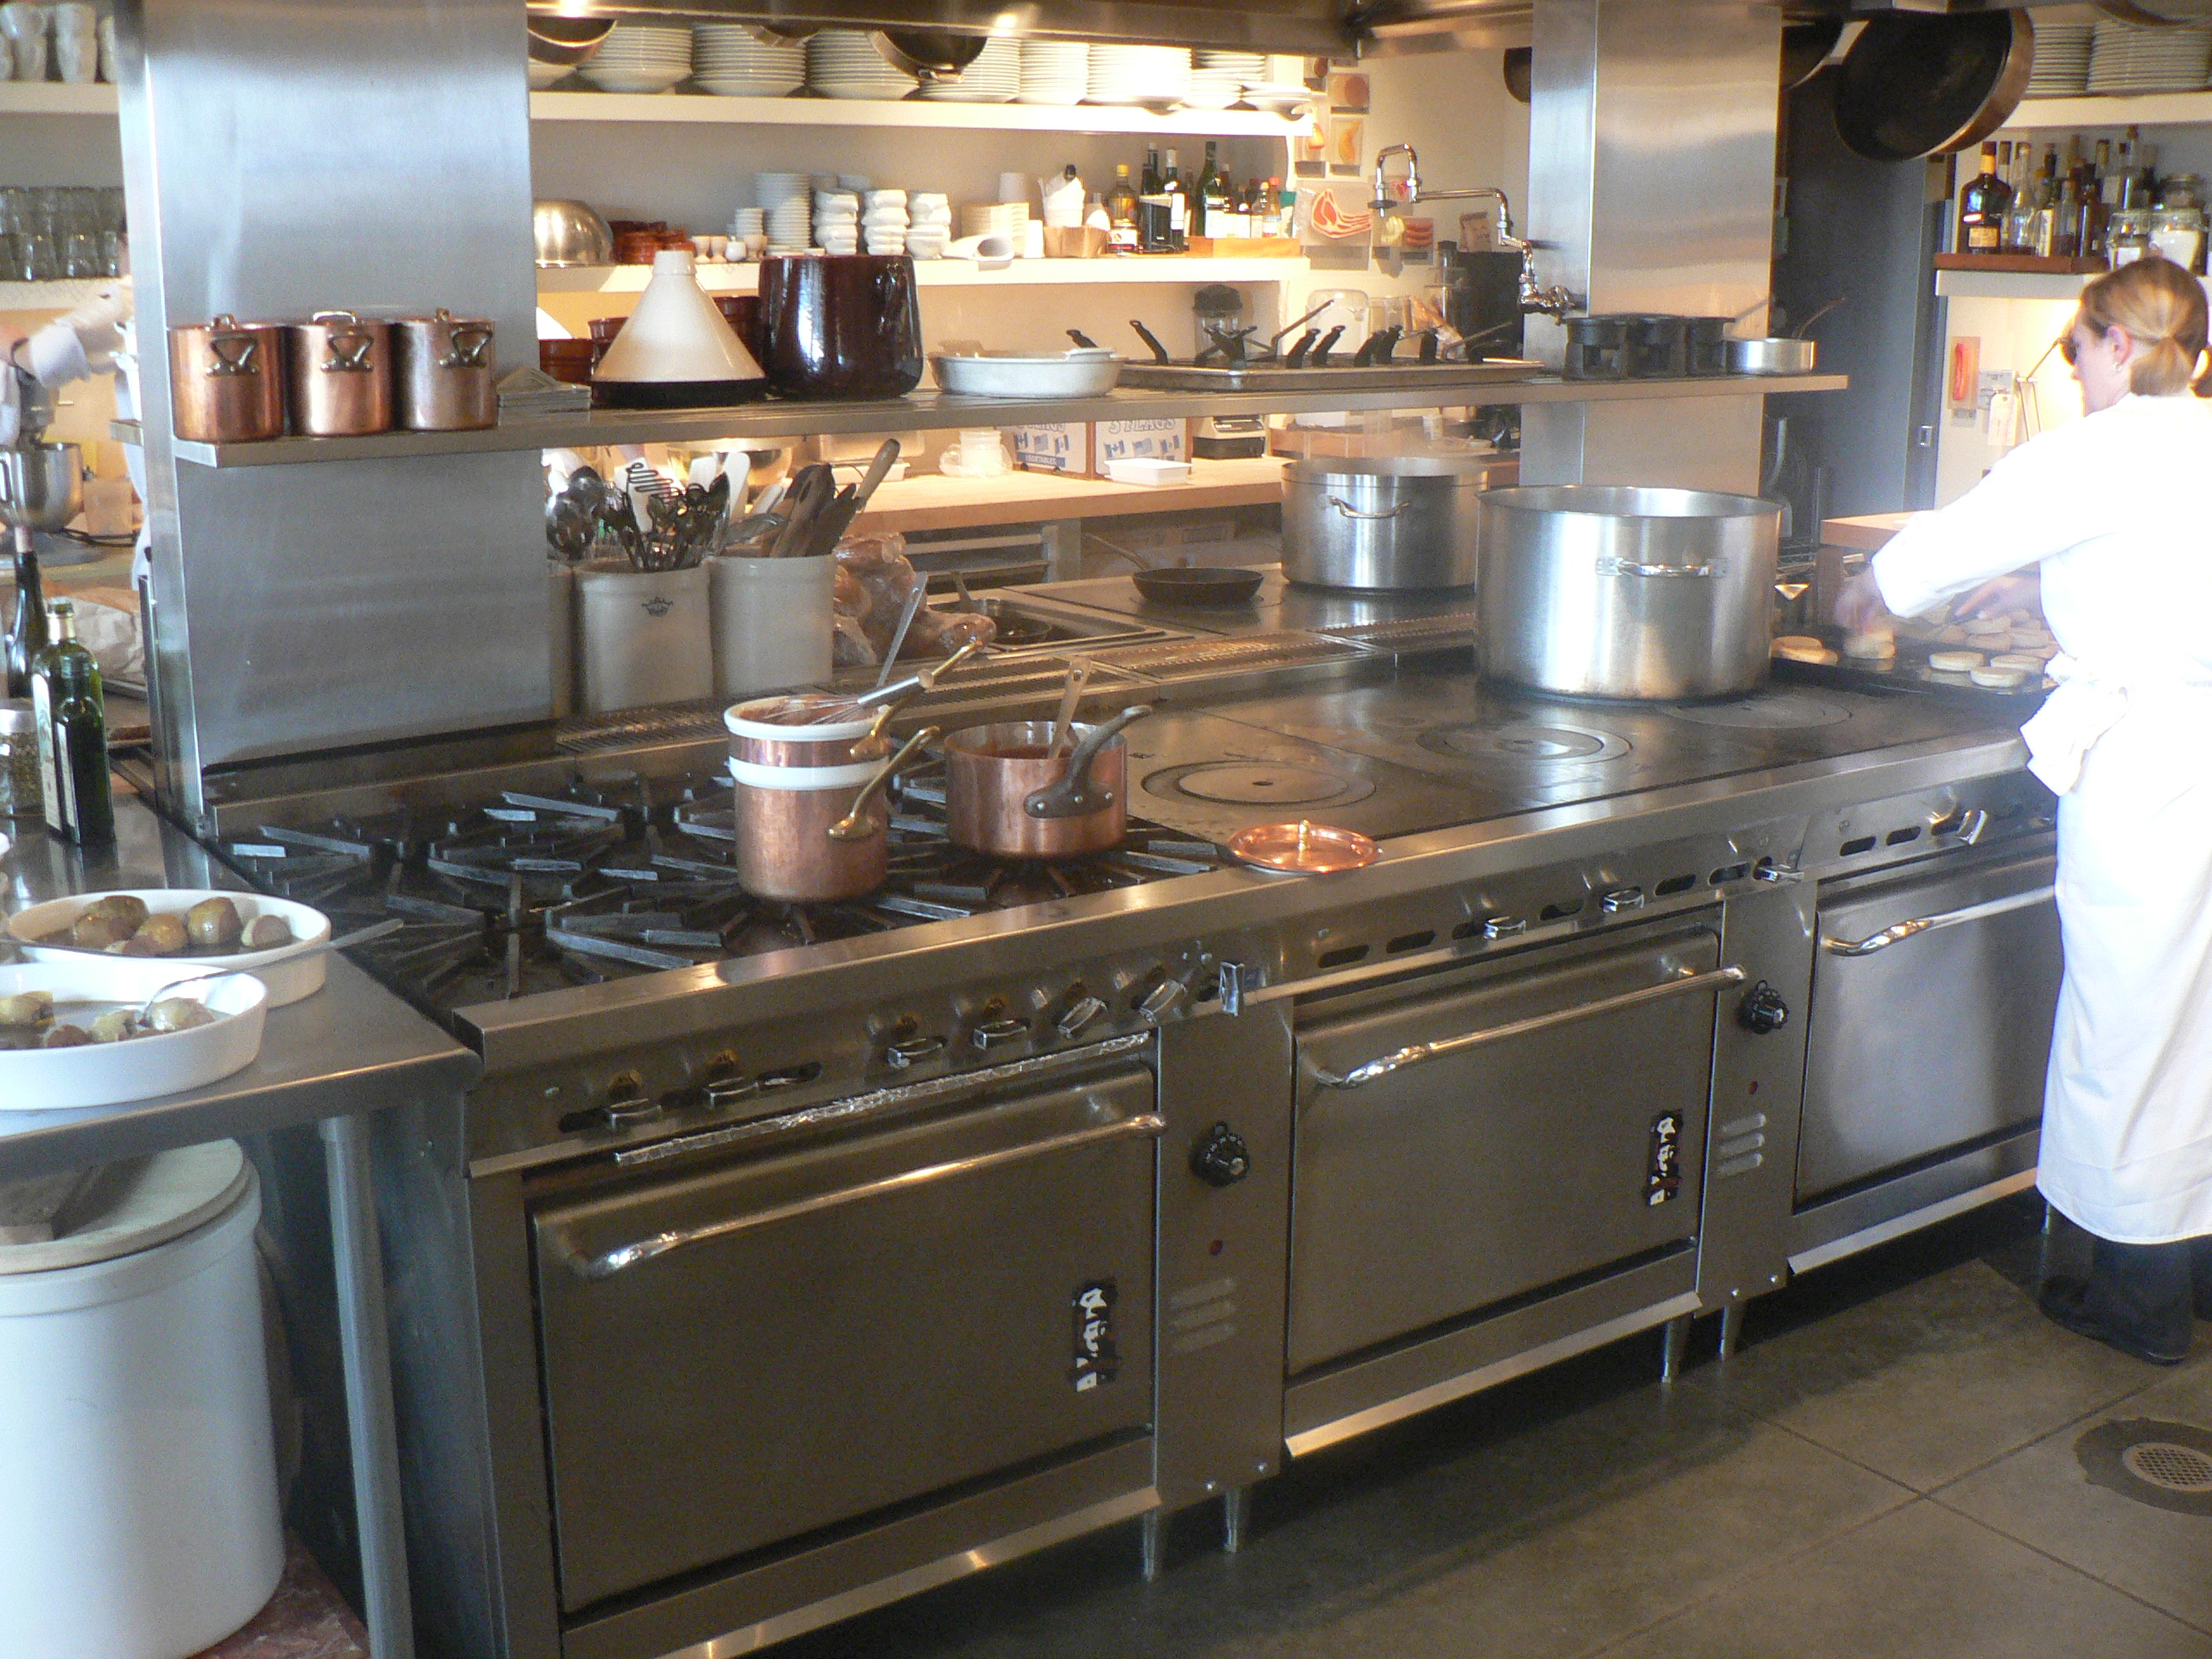 Commercial Kitchen Equipment Preventive Maintenance